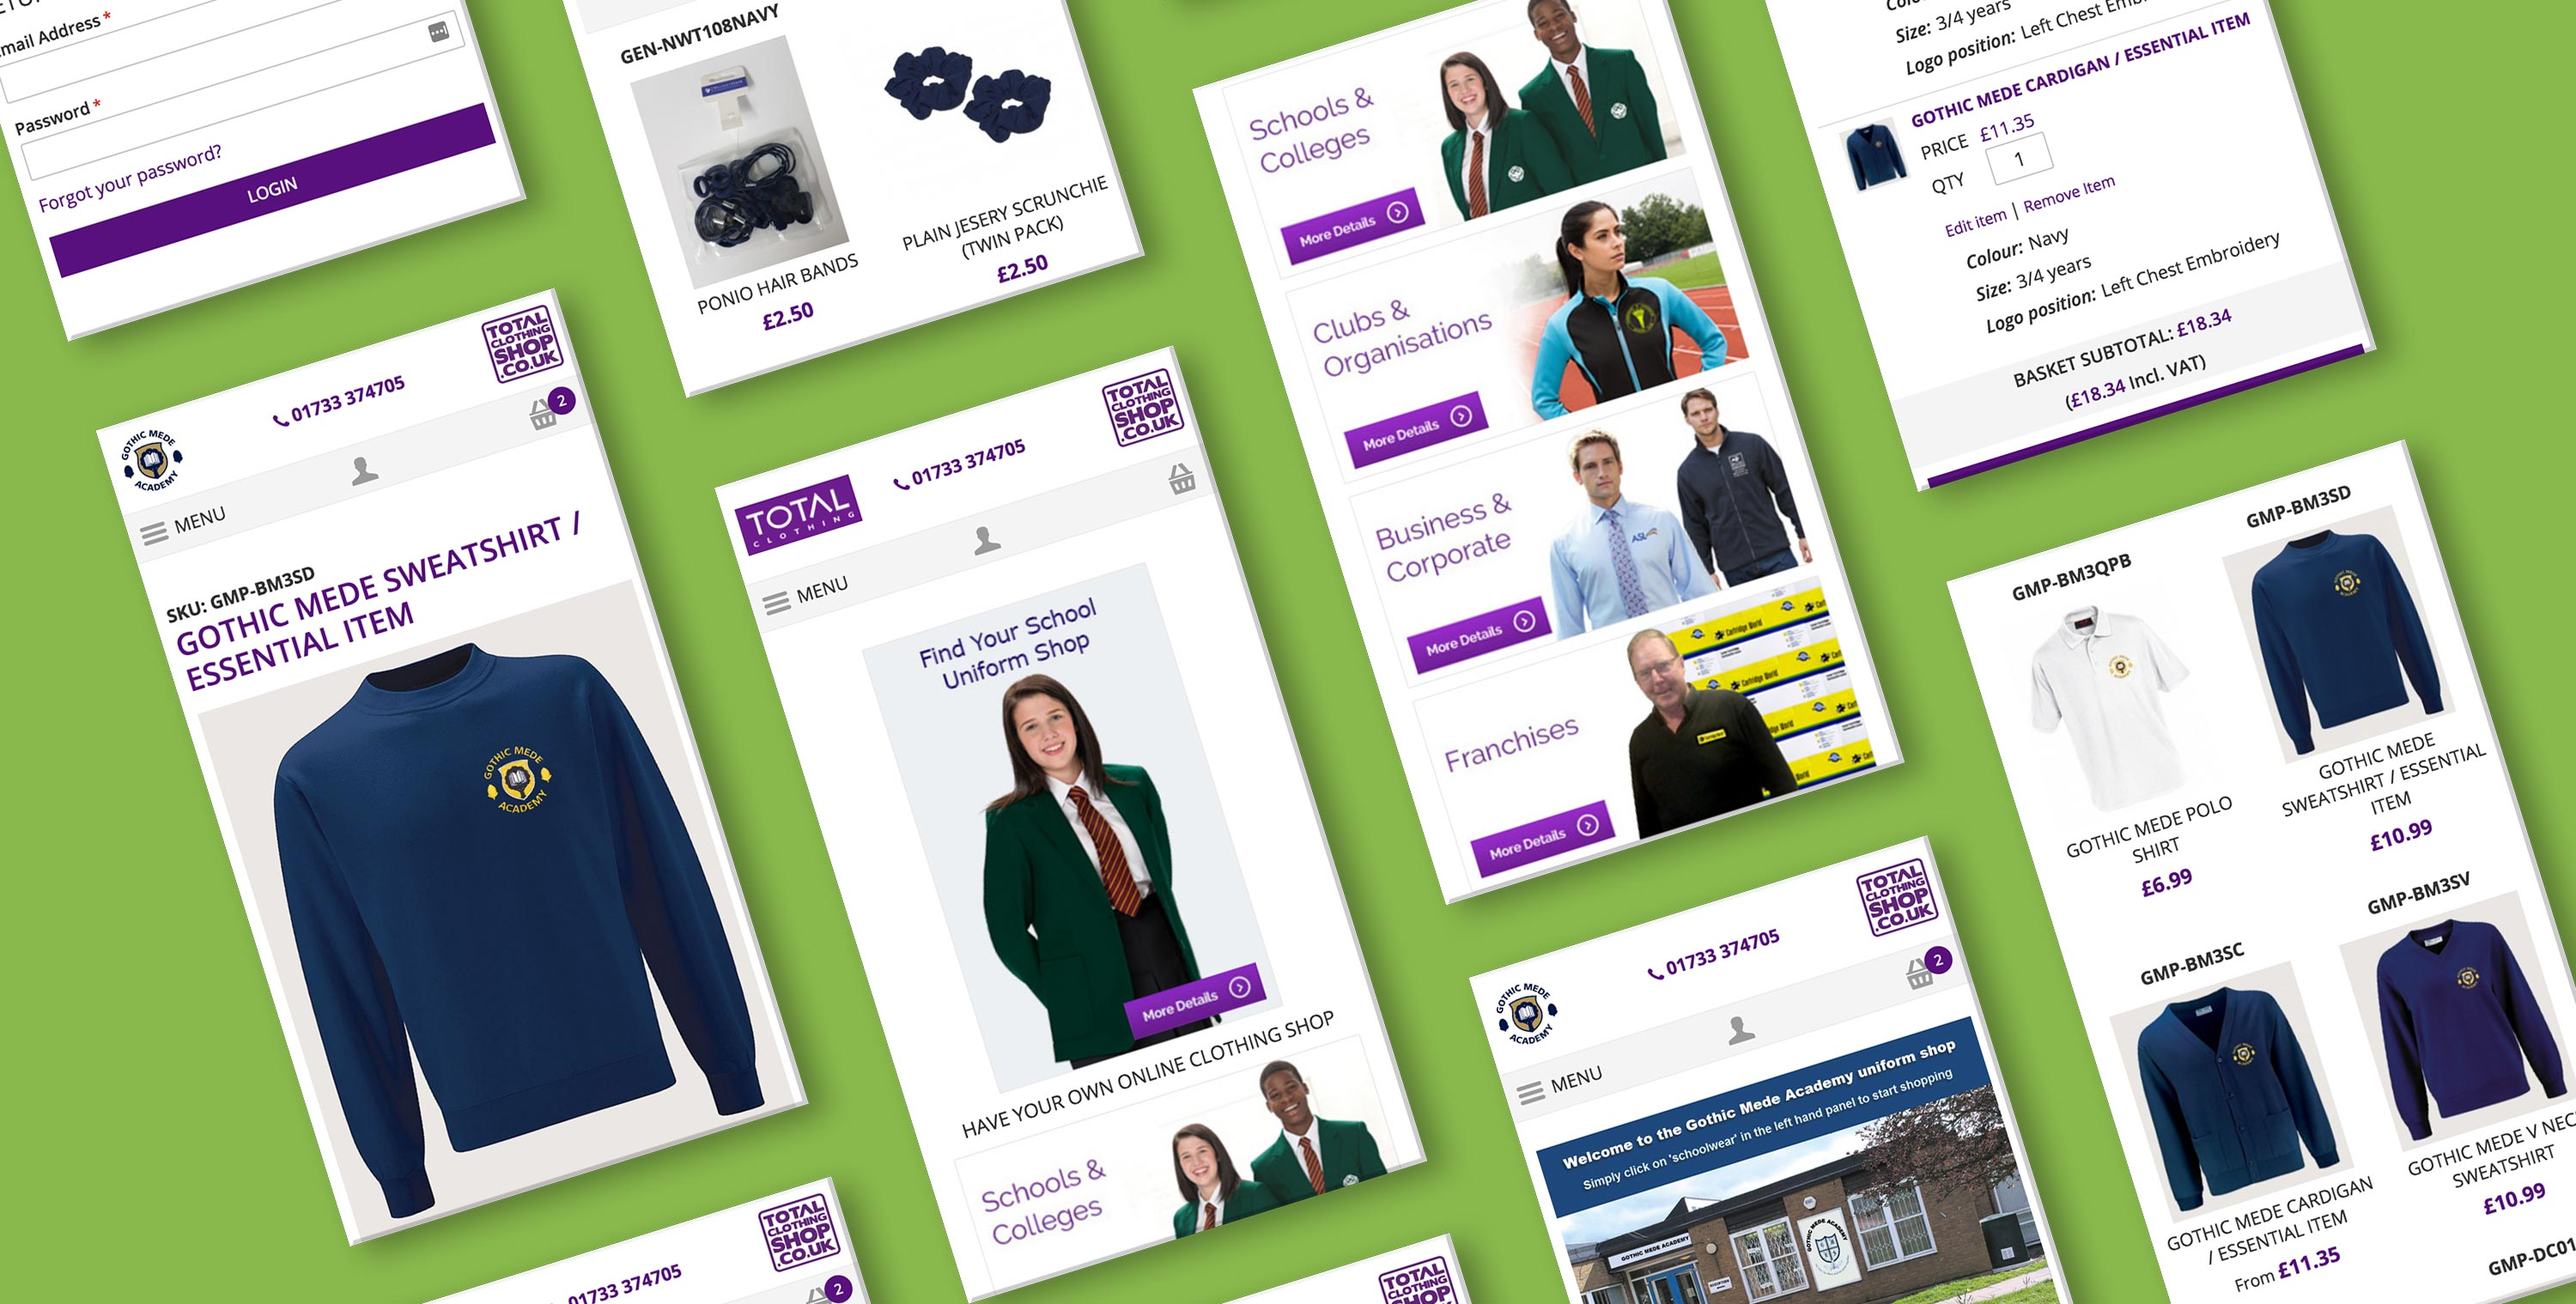 Total Clothing Shop Case Study